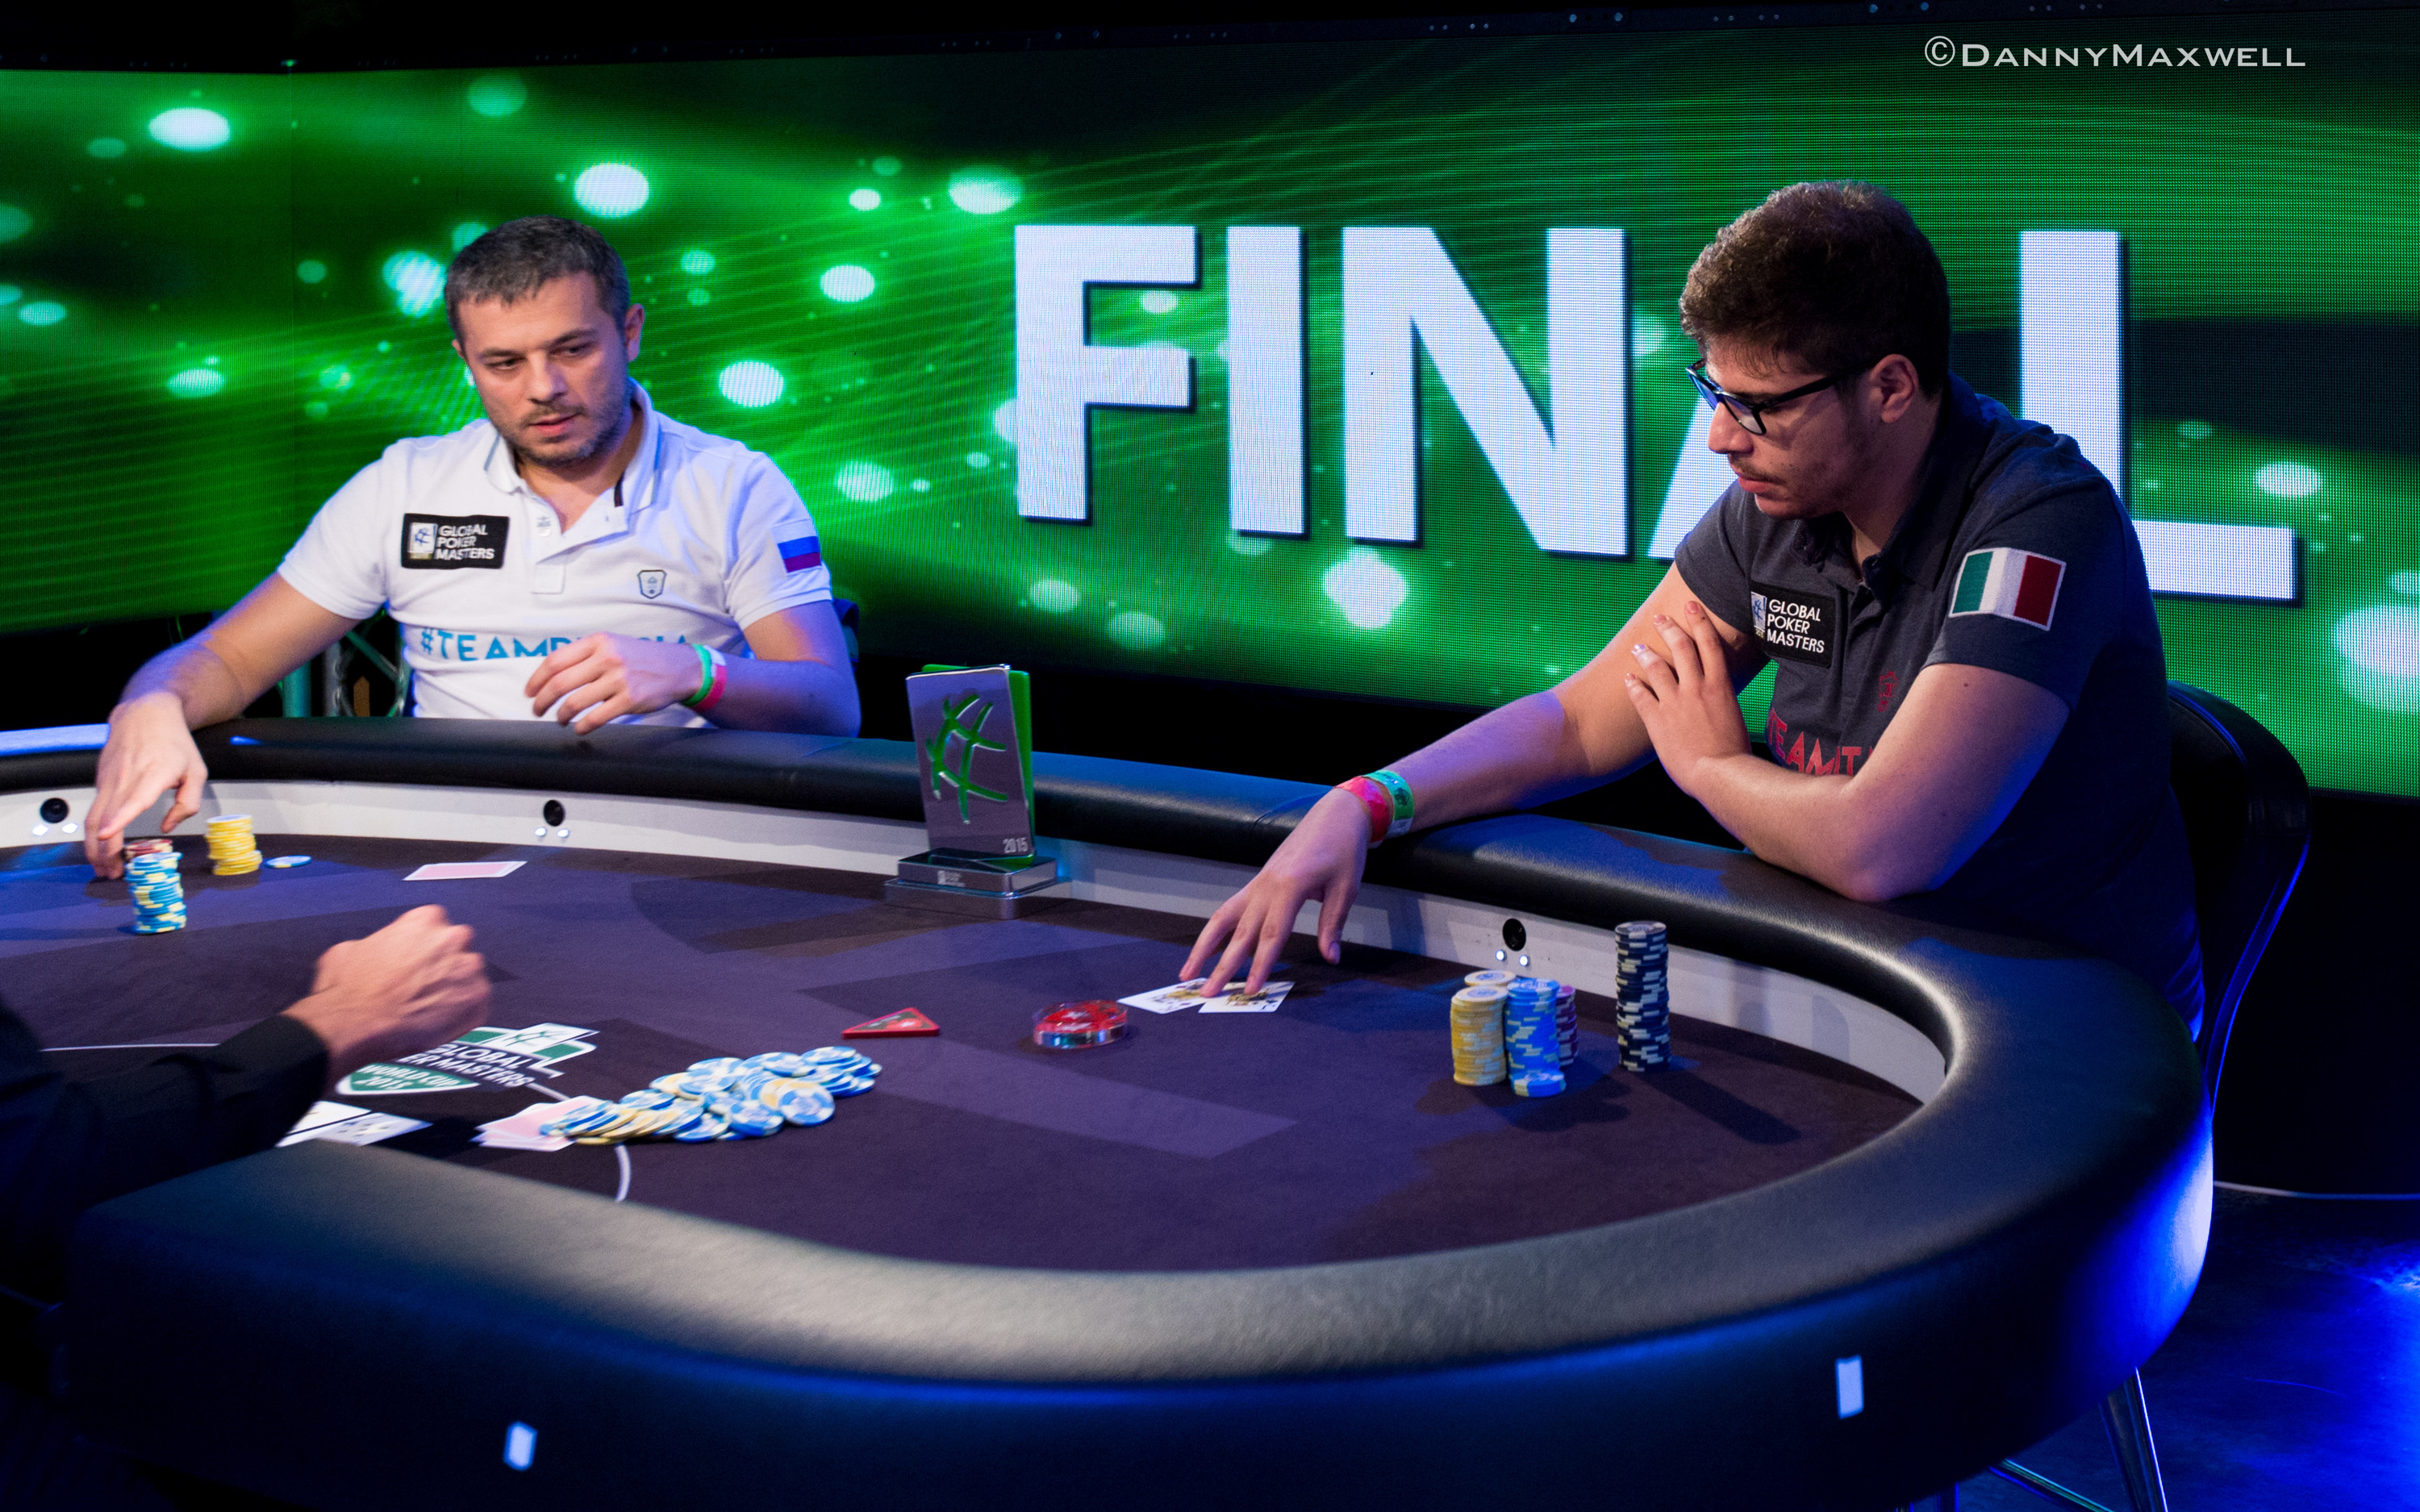 Poker Tells: A General Theory About Attention-Grabbing Behaviors, Part 1